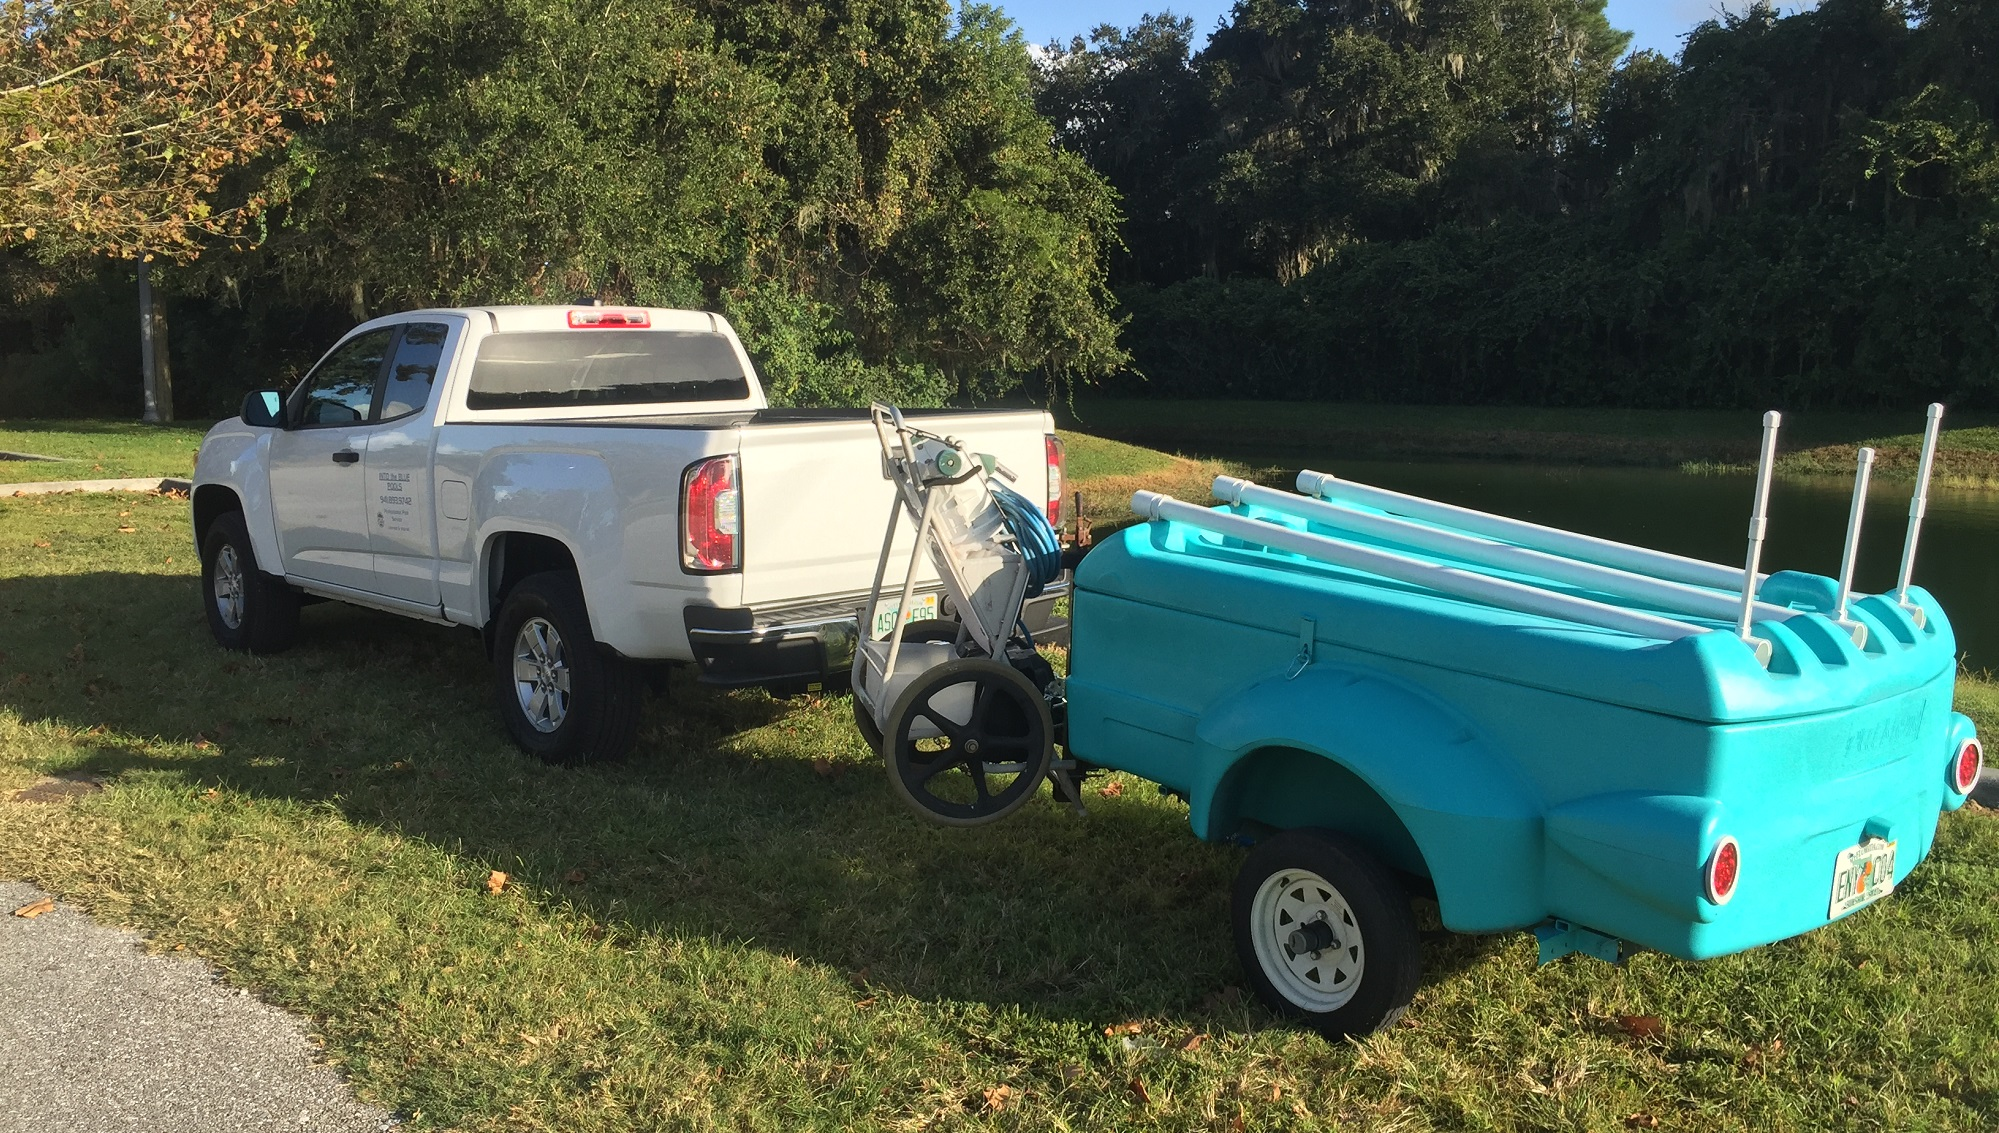 Why More Pool Service Pros Are Towing Utility Trailers